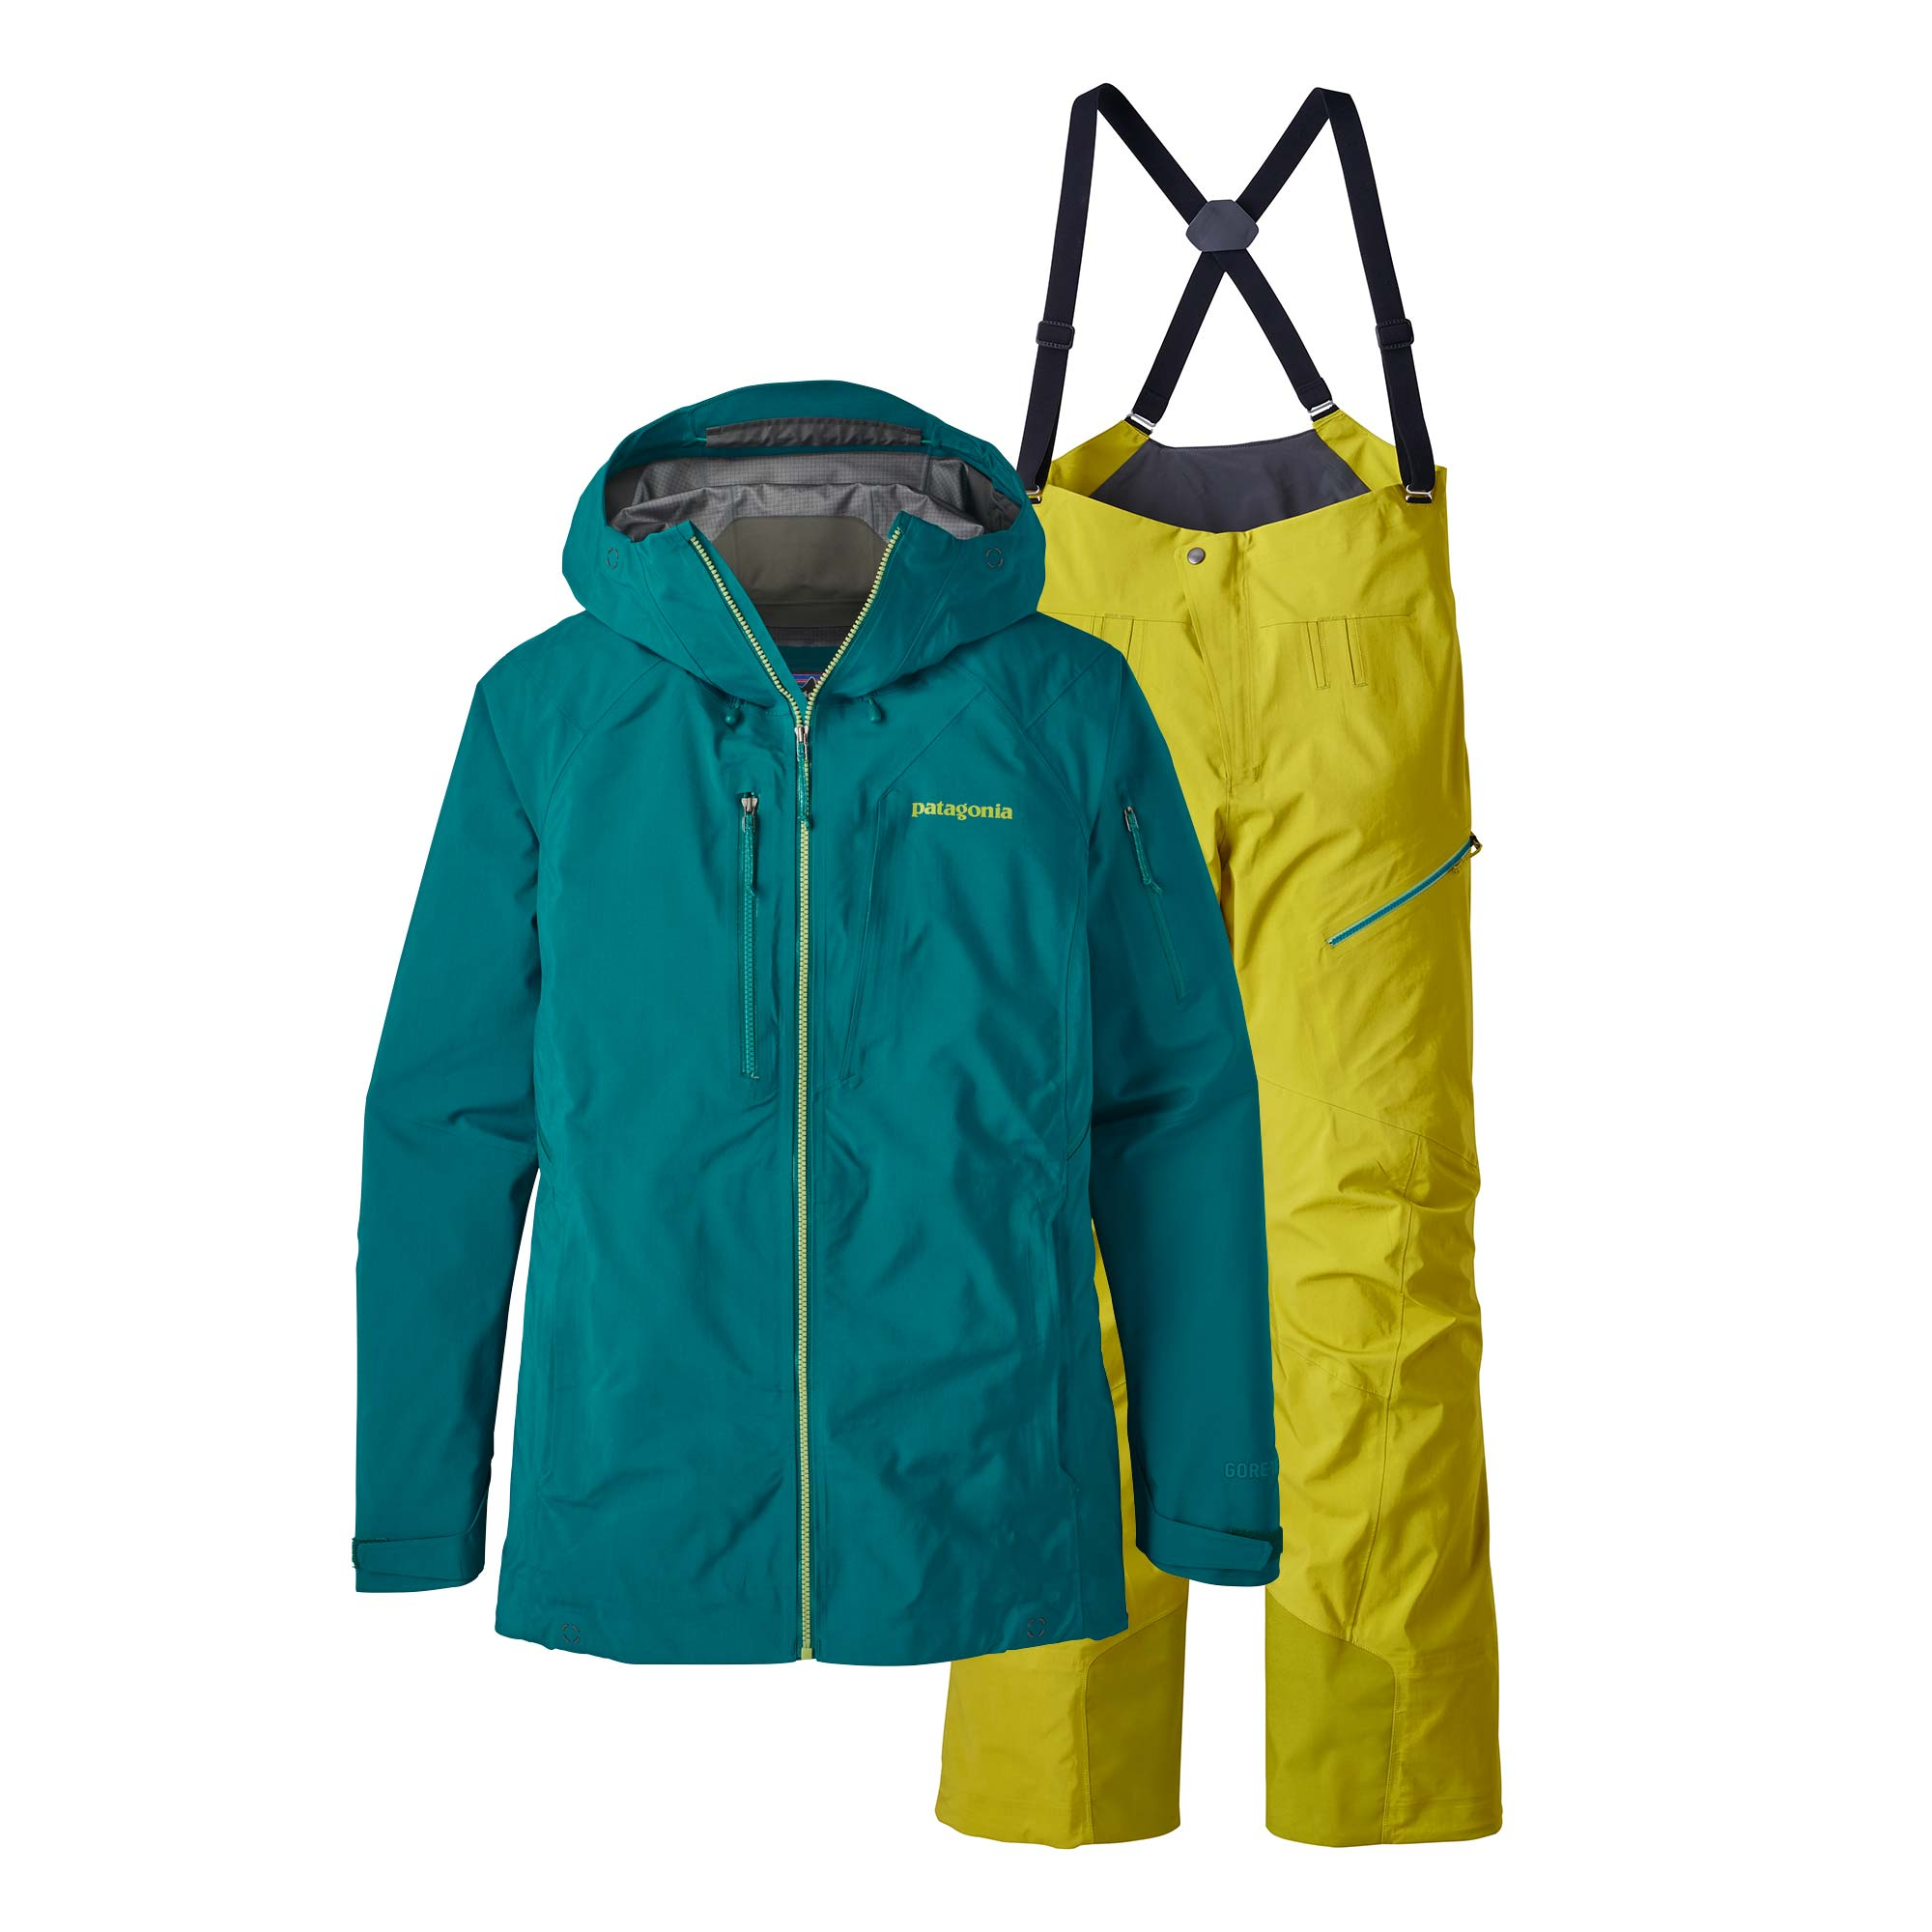 Women's PowSlayer Jacket and Bibs